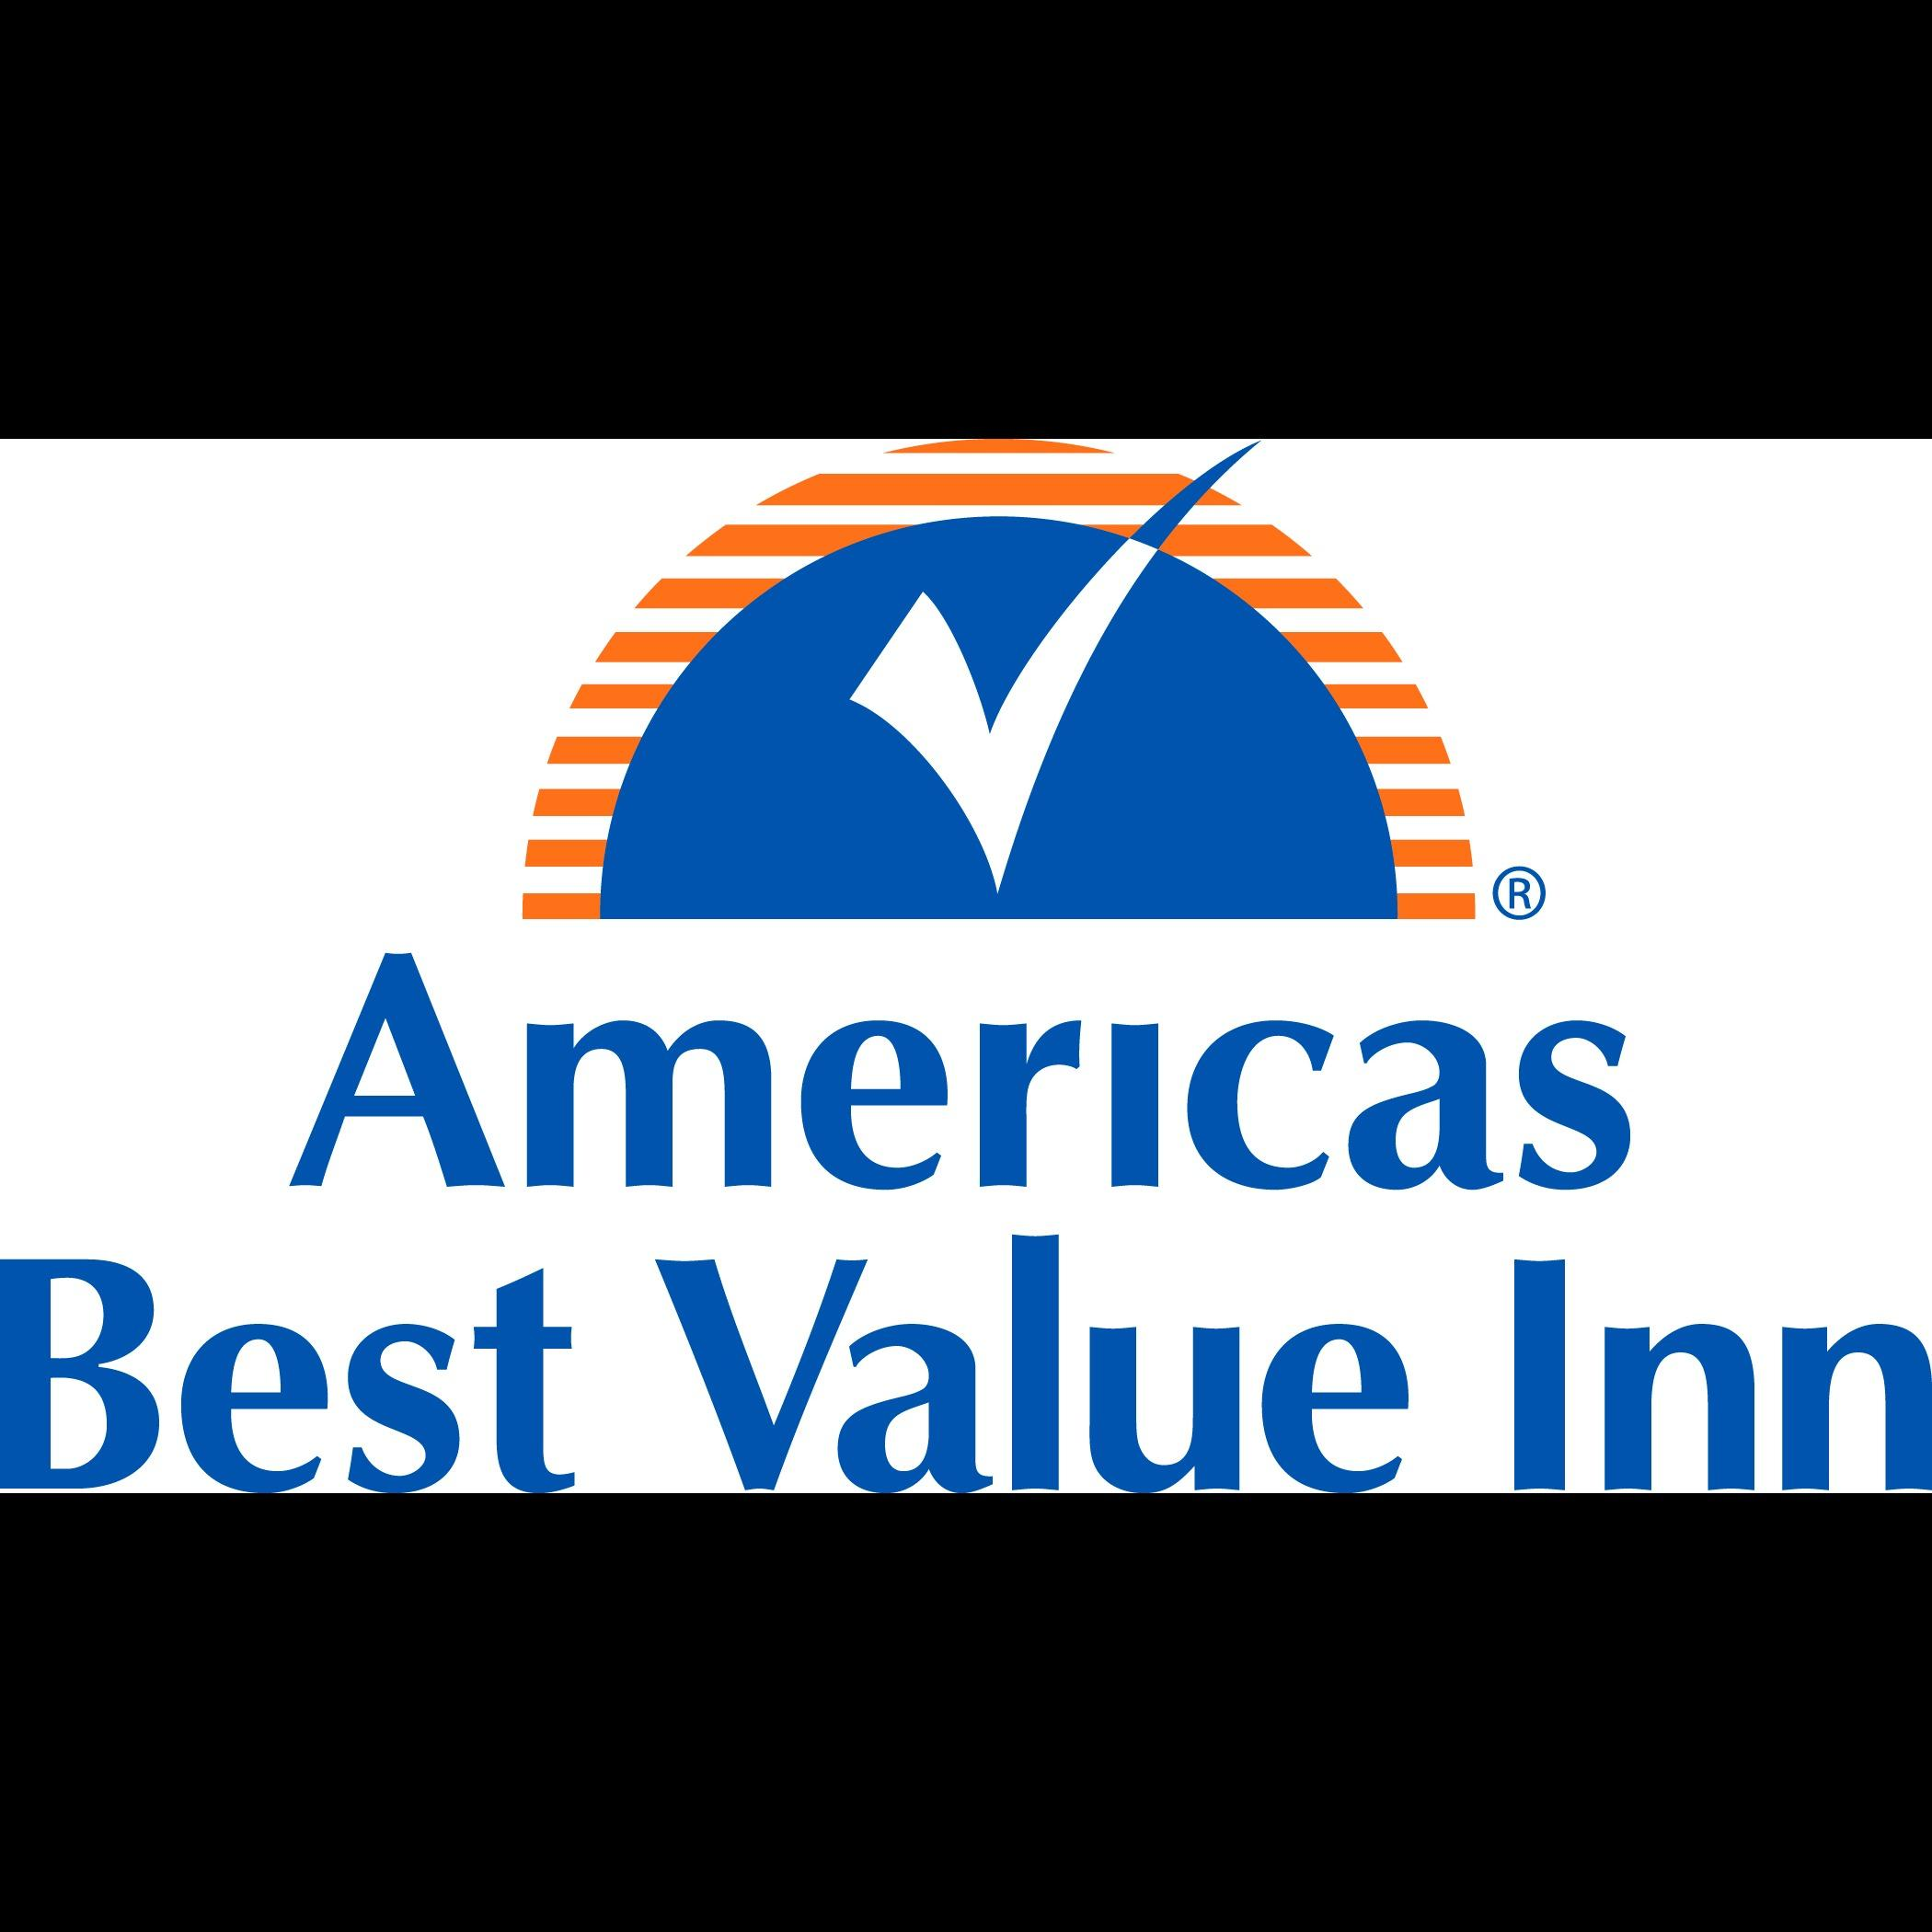 Americas Best Value Inn - AT&T Center